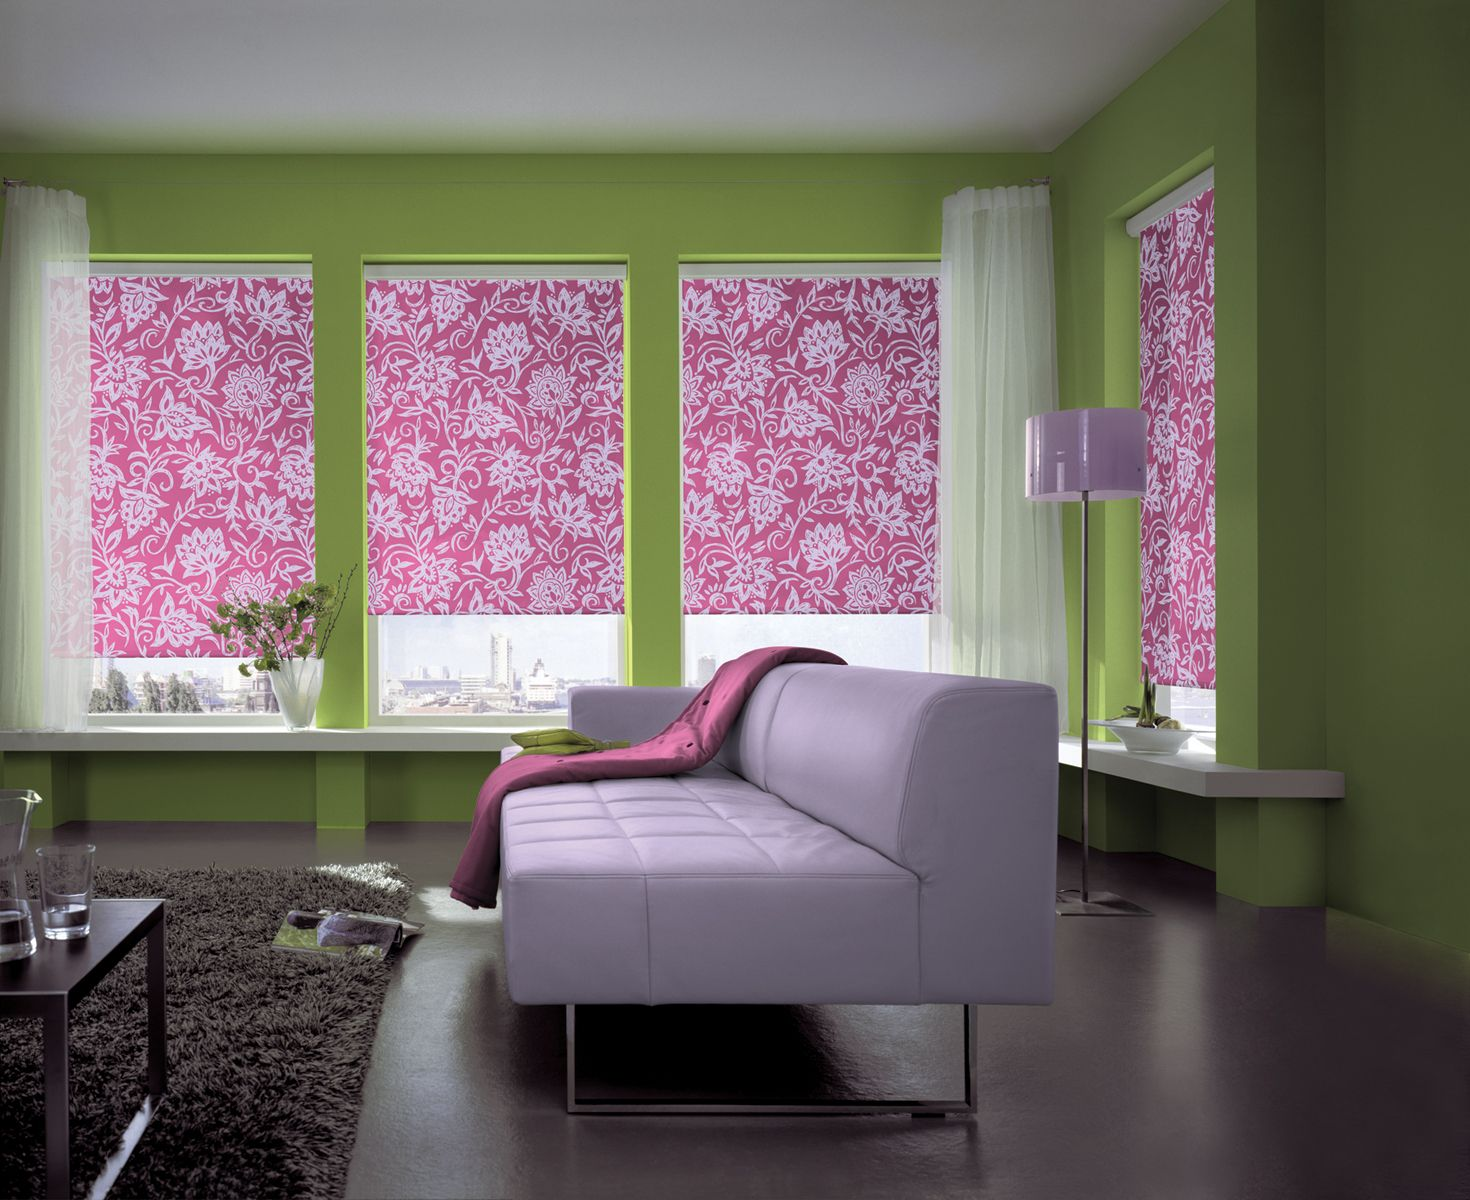 Colorful Fabric Panels or Roller Shades!